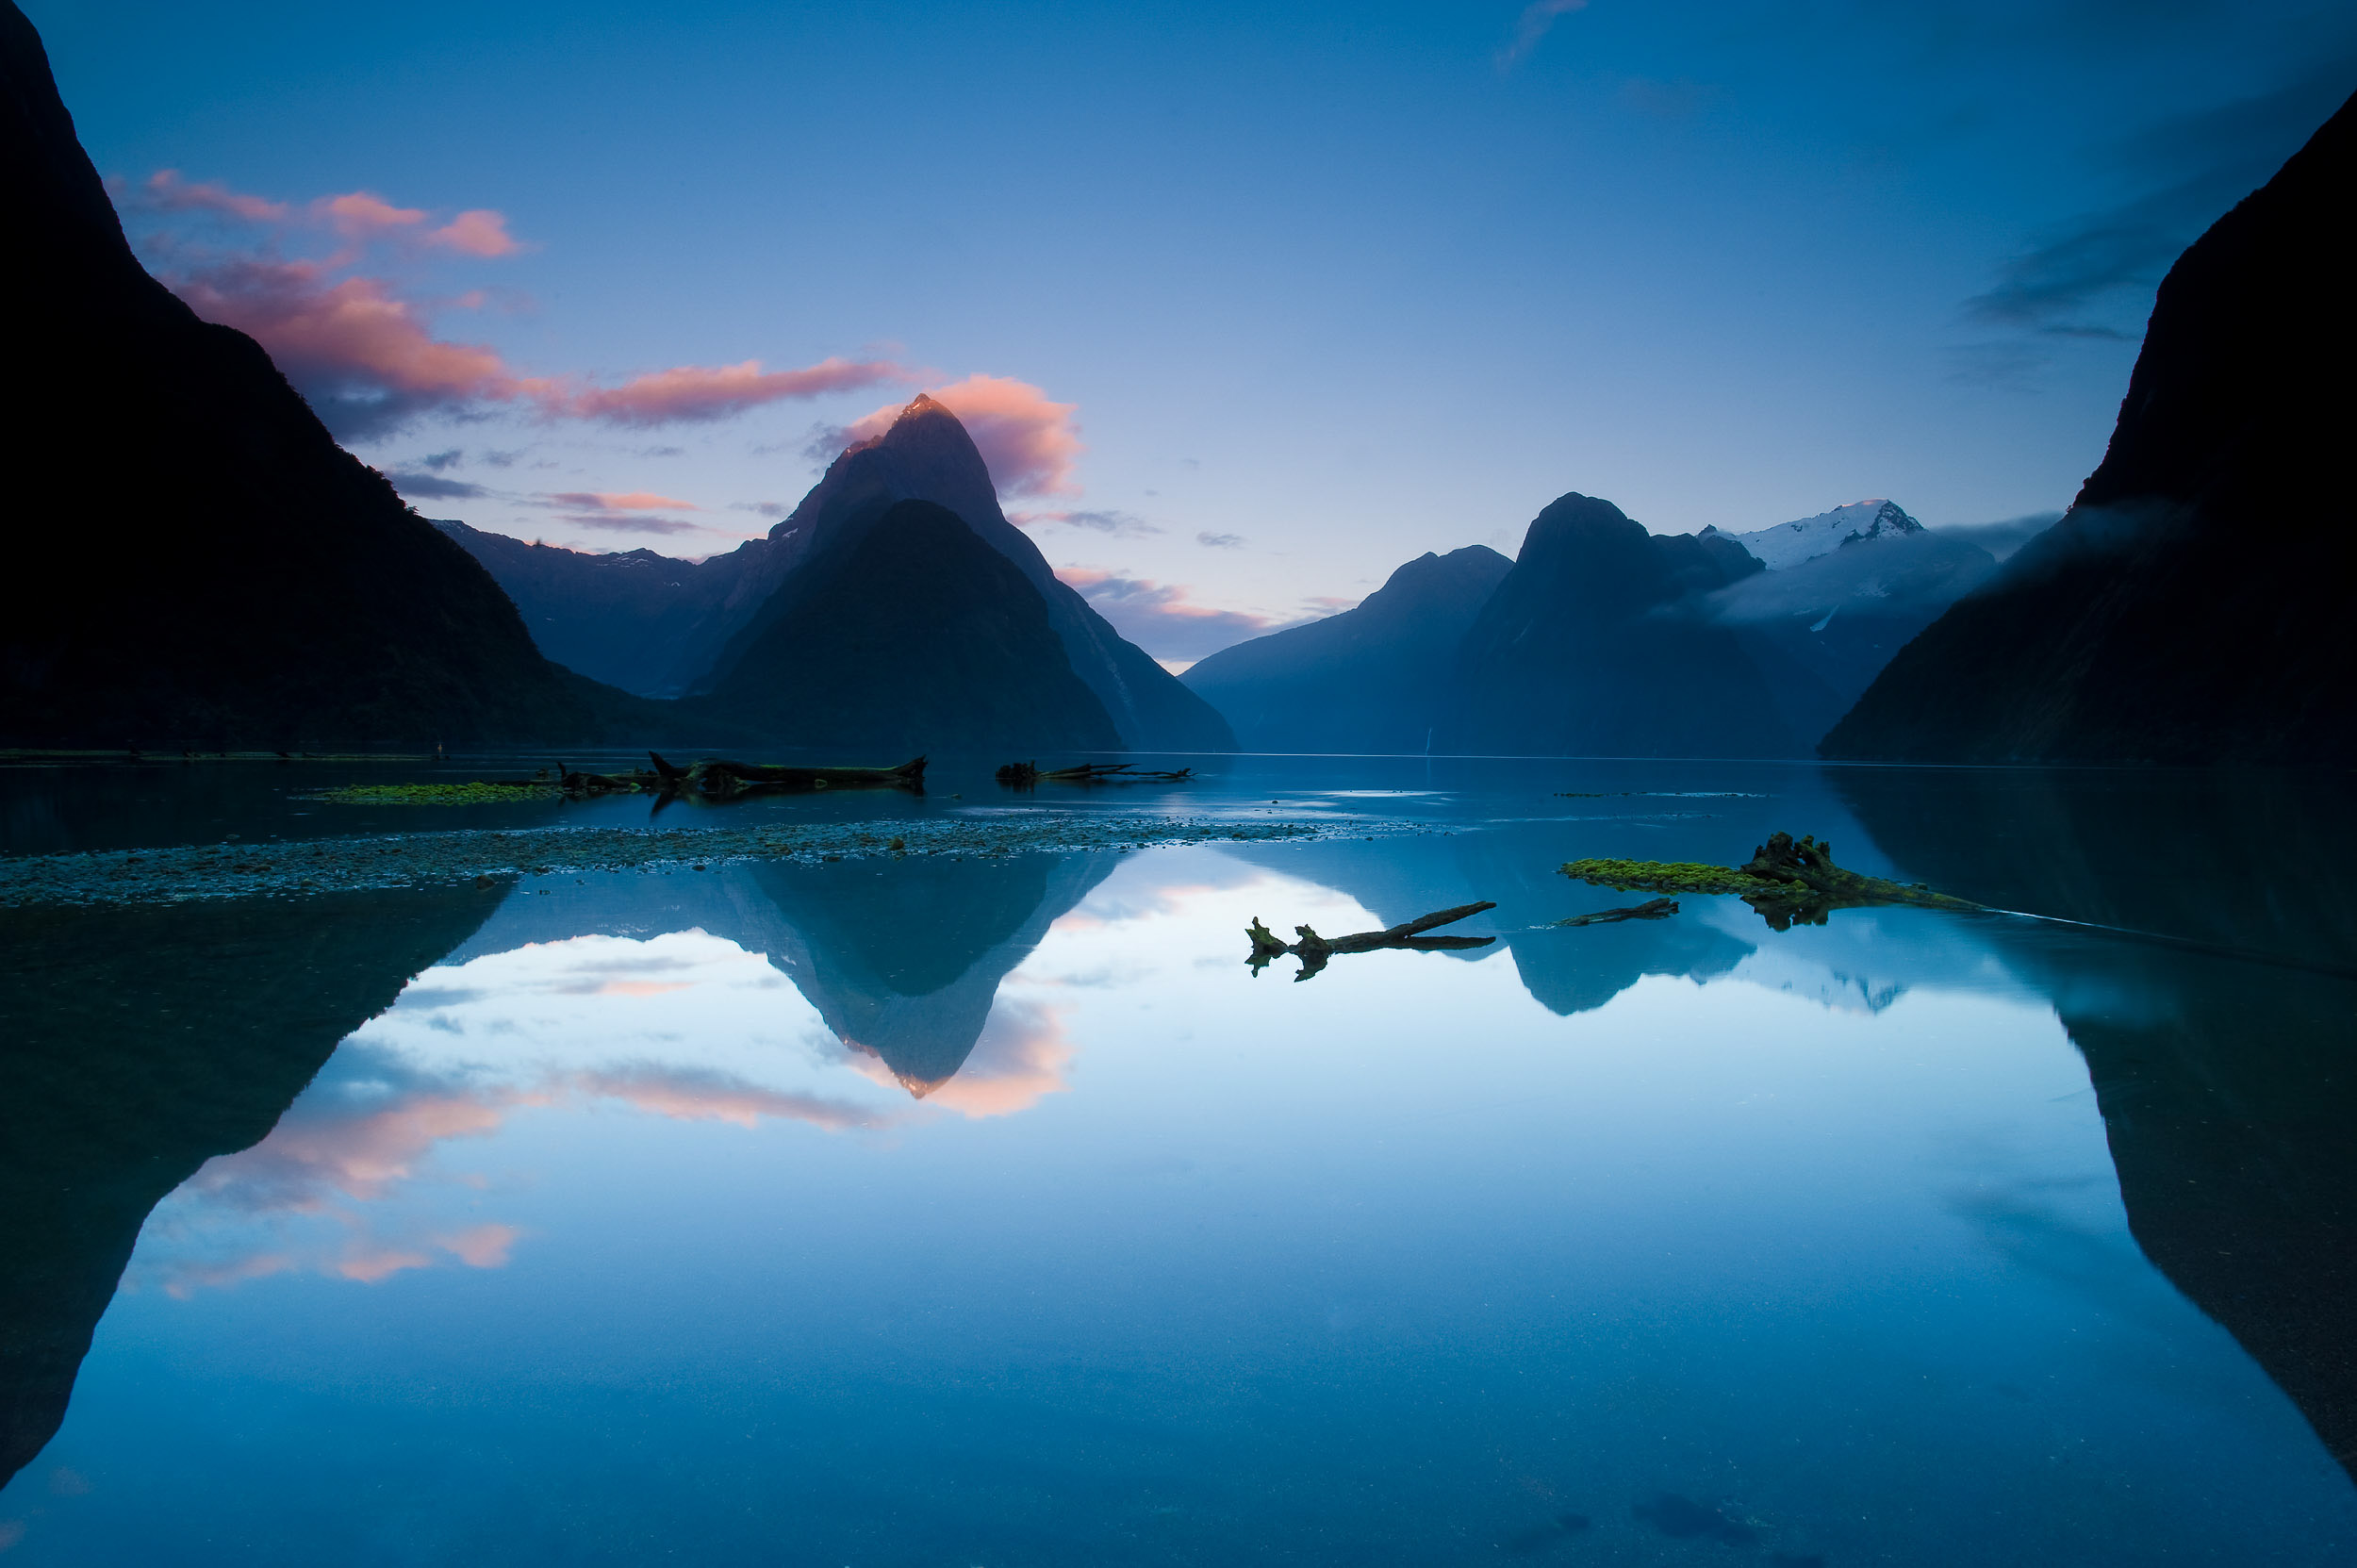 milford-sound-fjordland-national-park-nobody-landscape-tranquil-lake-dawn-south-island-new-zealand